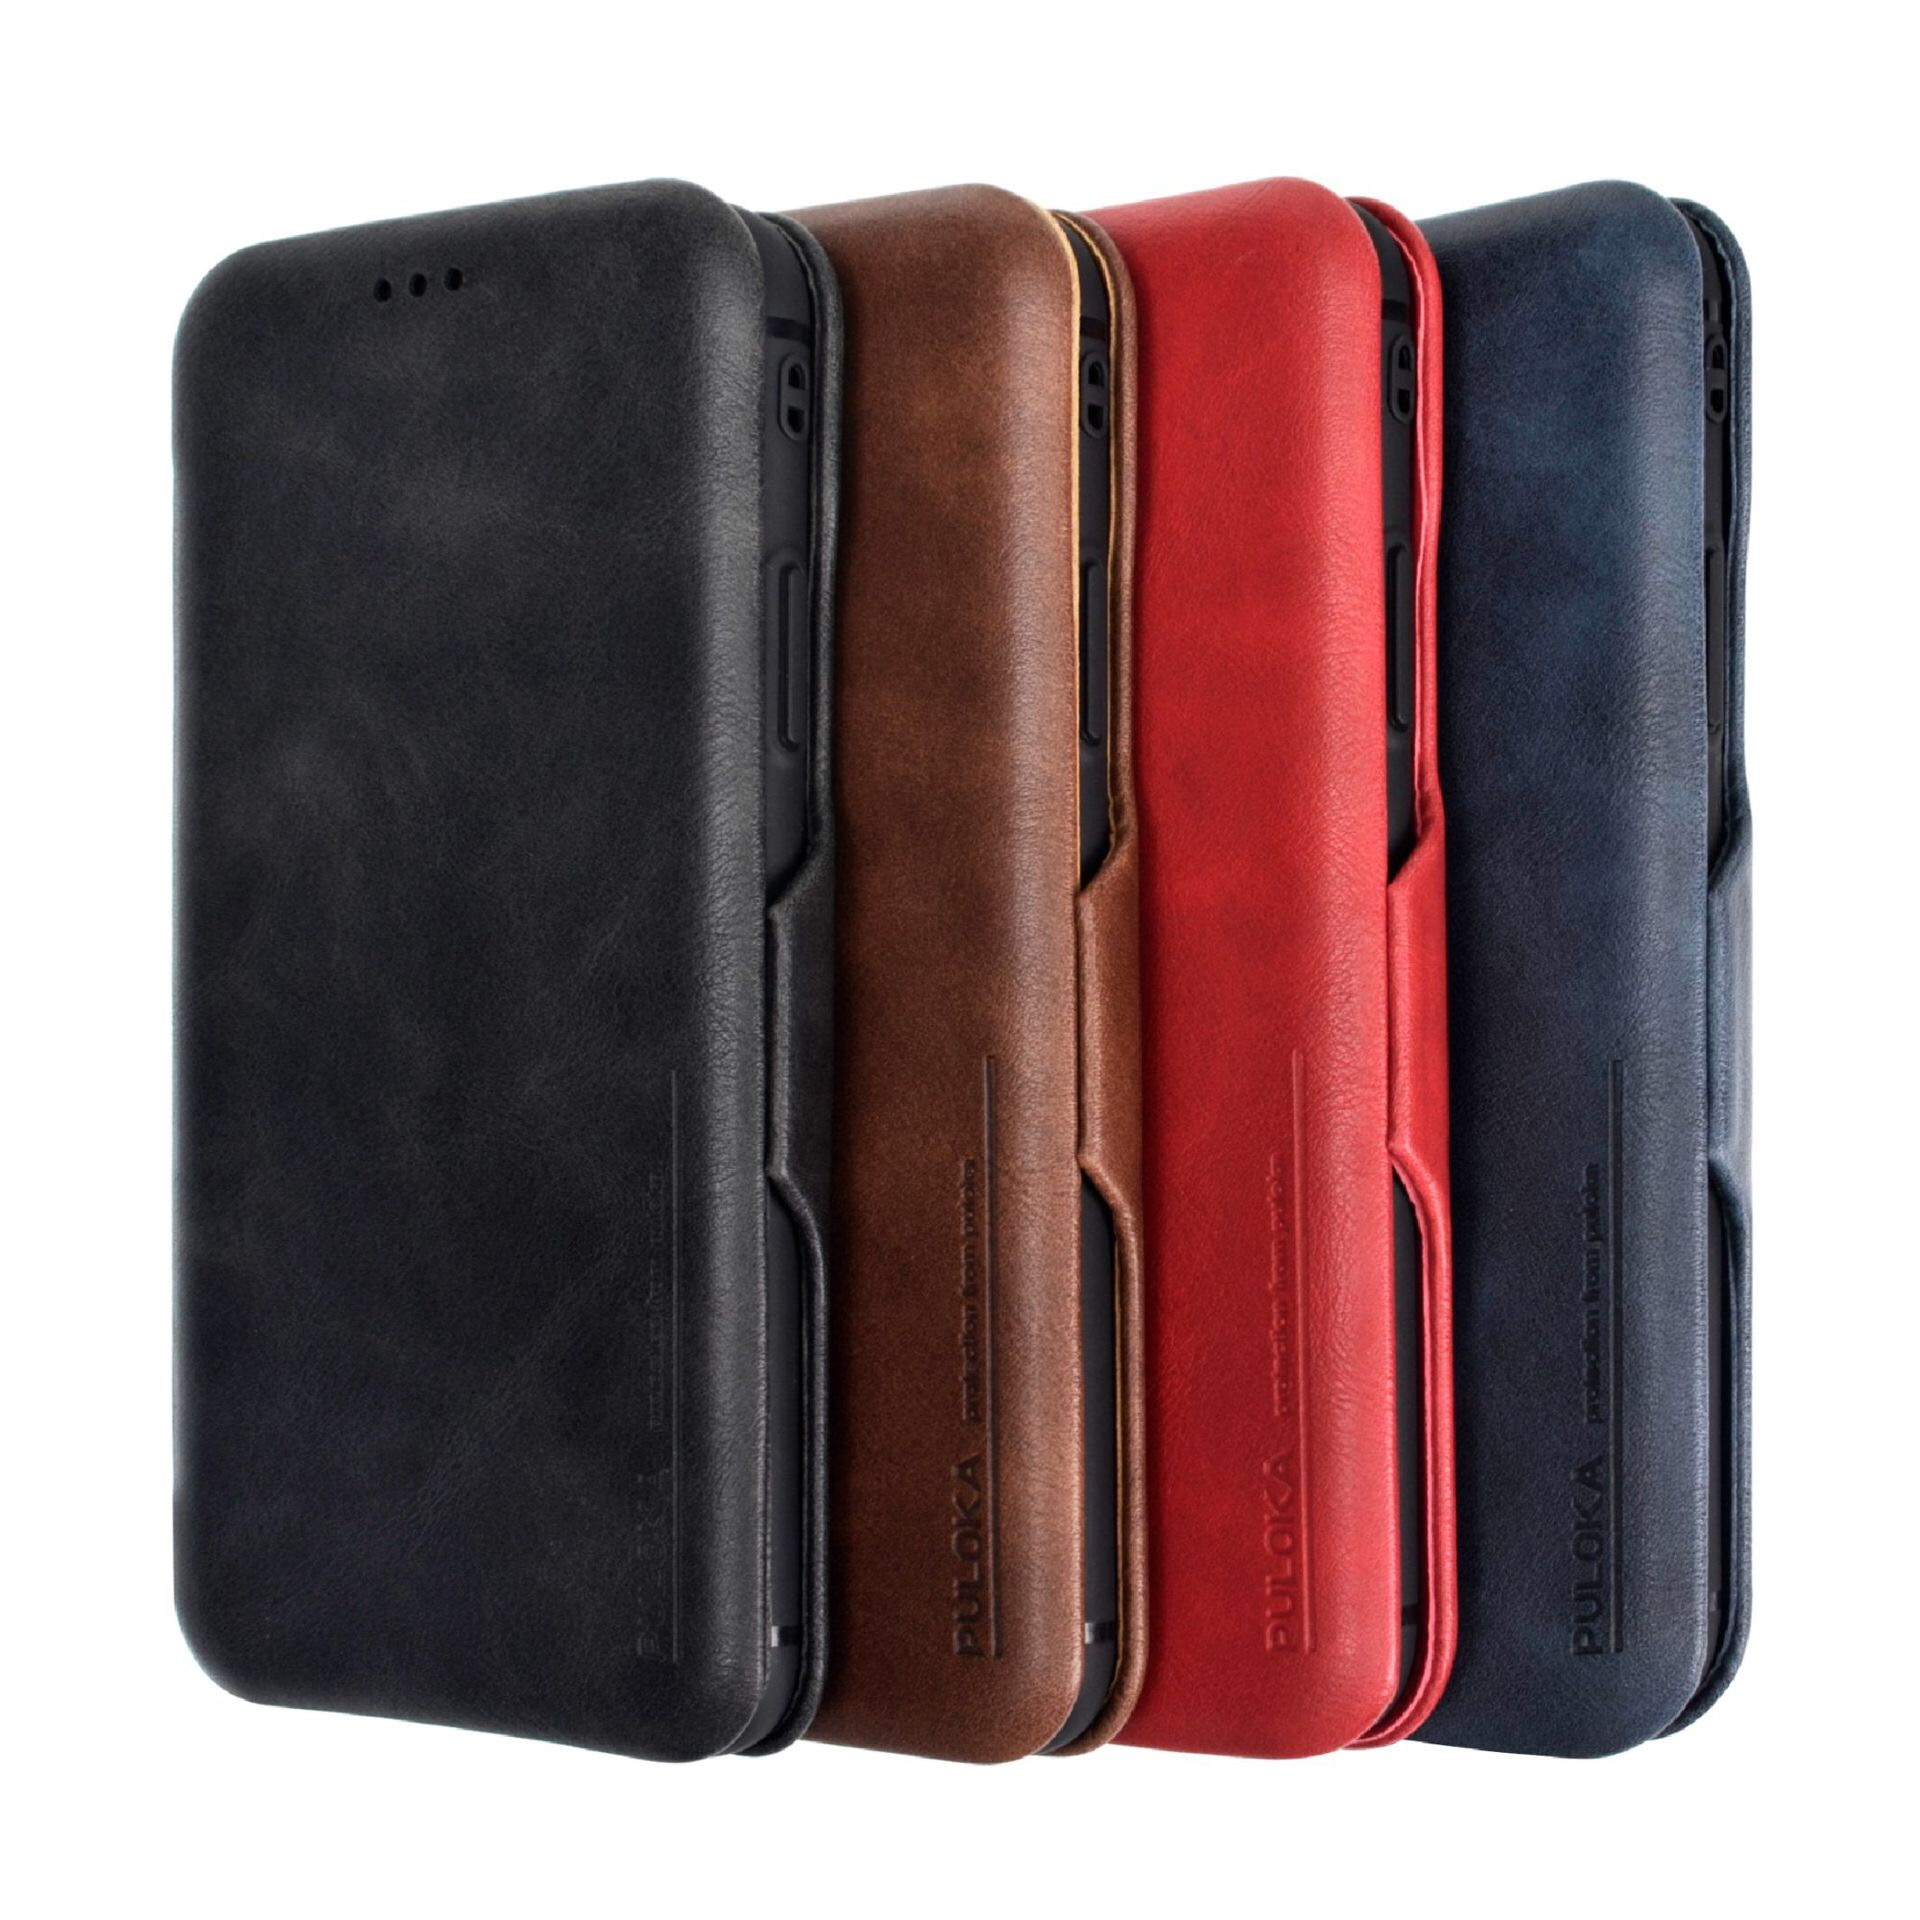 CYATO Luxury Case Leather Cover For iPhone XS Max XR X XS 6 6S 7 8 Plus Phone Cases Magentic Slide Coque Card Holder Wallet Bag in Fitted Cases from Cellphones Telecommunications